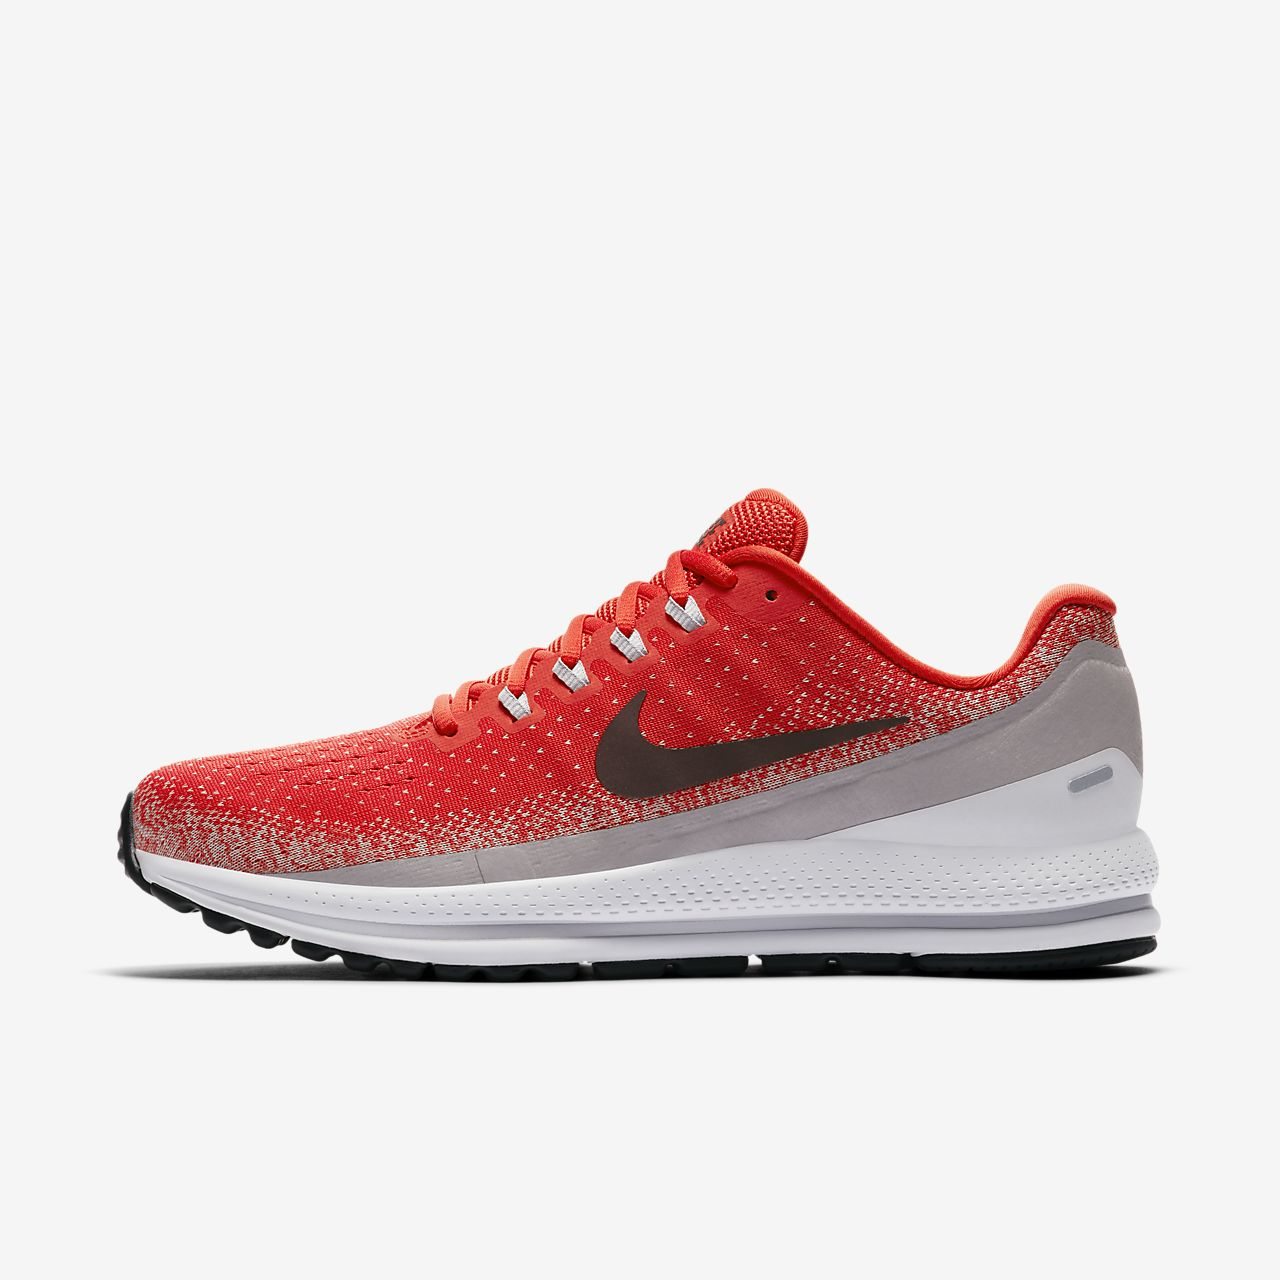 ... Nike Air Zoom Vomero 13 Men's Running Shoe